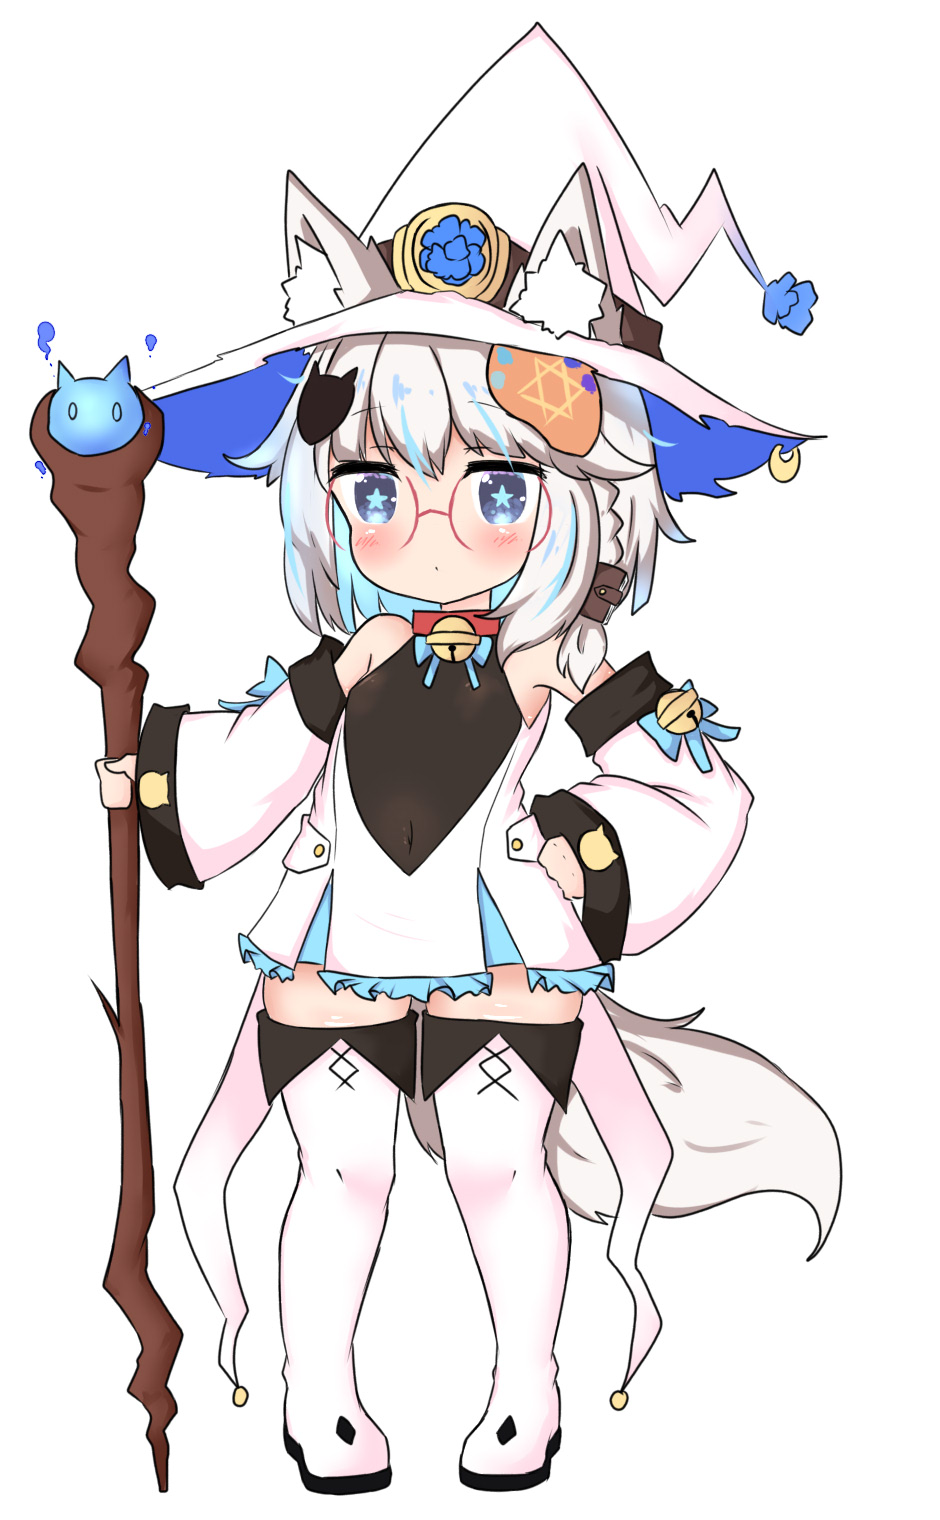 1girl animal_ear_fluff animal_ears bailingxiao_jiu bell black_leotard blue_eyes blue_hair blush boots braid closed_mouth covered_navel detached_sleeves dress ears_through_headwear fox_hair_ornament frilled_dress frills full_body glasses hair_ornament hand_on_hip hat highres holding holding_staff jingle_bell leotard long_sleeves multicolored_hair original pigeon-toed pleated_dress short_dress side_braid silver_hair simple_background sleeves_past_wrists solo staff standing star star-shaped_pupils symbol-shaped_pupils tail thigh-highs thigh_boots two-tone_hair white_background white_dress white_footwear white_headwear white_legwear white_sleeves wide_sleeves witch_hat